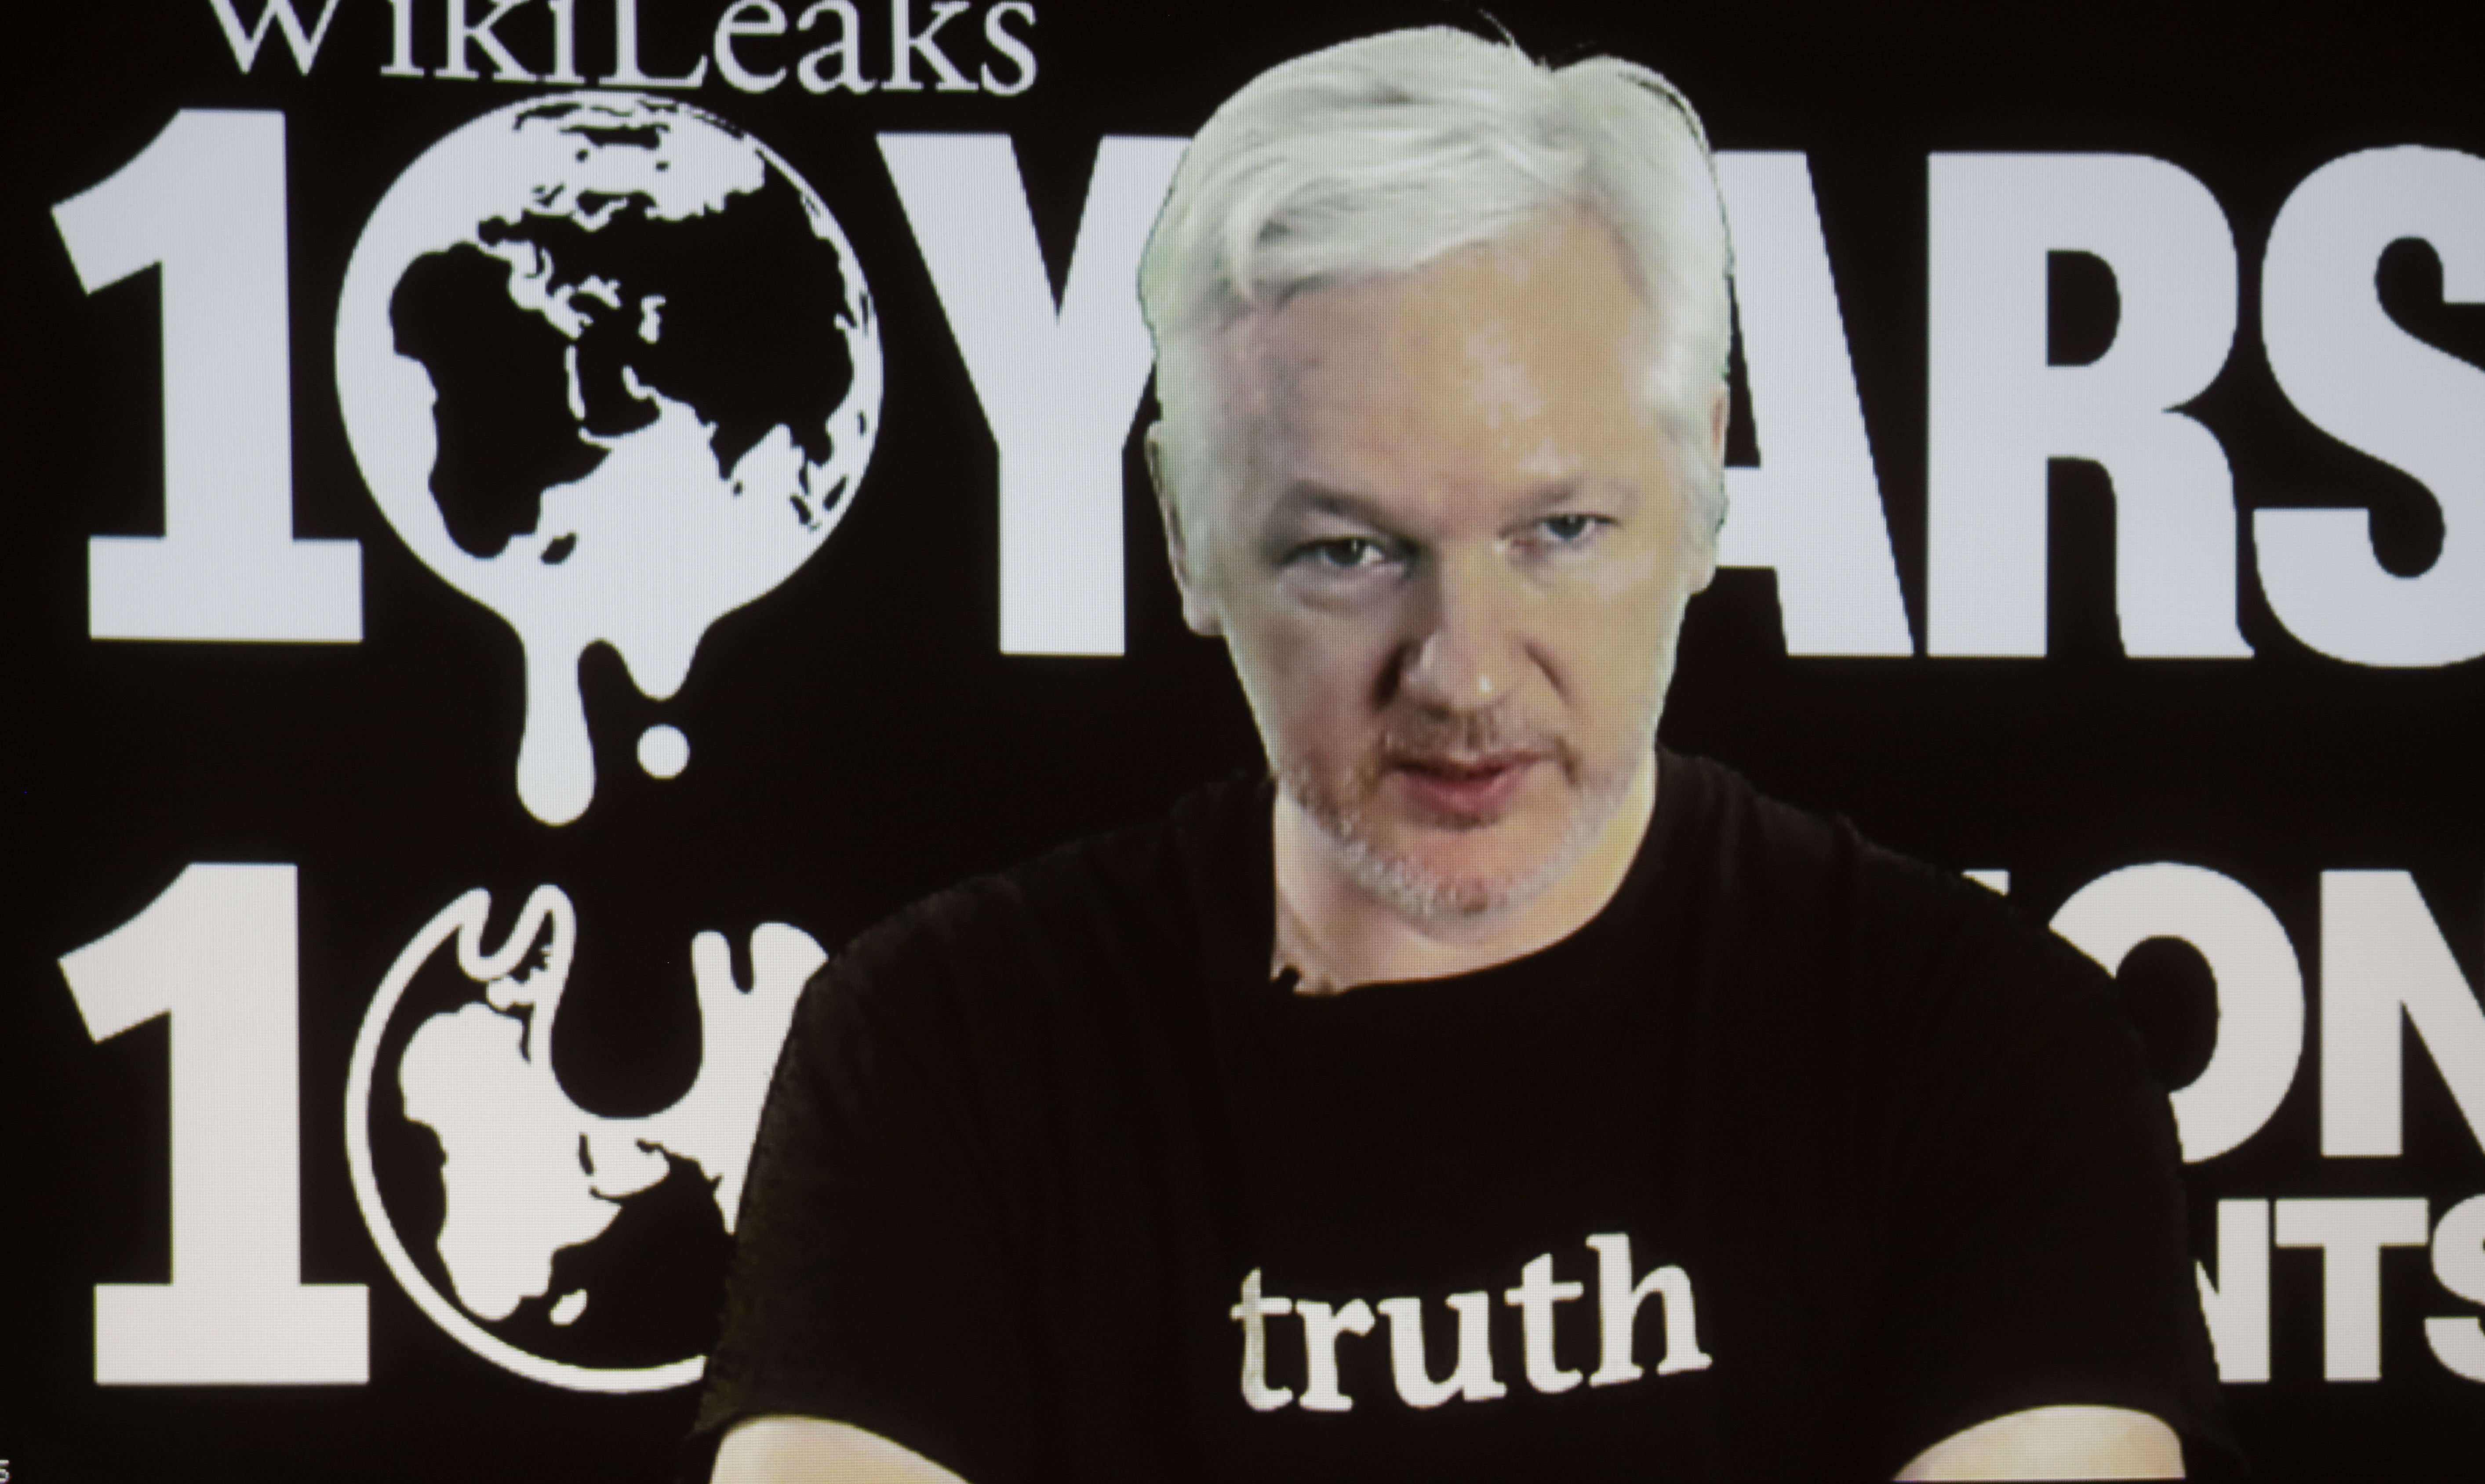 FILE - In this Oct. 4, 2016 file photo, WikiLeaks founder Julian Assange participates via video link at a news conference marking the 10th anniversary of the secrecy-spilling group in Berlin. Assange may be stuck in the Ecuadorean Embassy and cut off from the internet, but he's closer than ever to testing a hypothesis he first outlined nearly a decade ago. Can total transparency defeat an entrenched group of insiders? (AP Photo/Markus Schreiber, File)